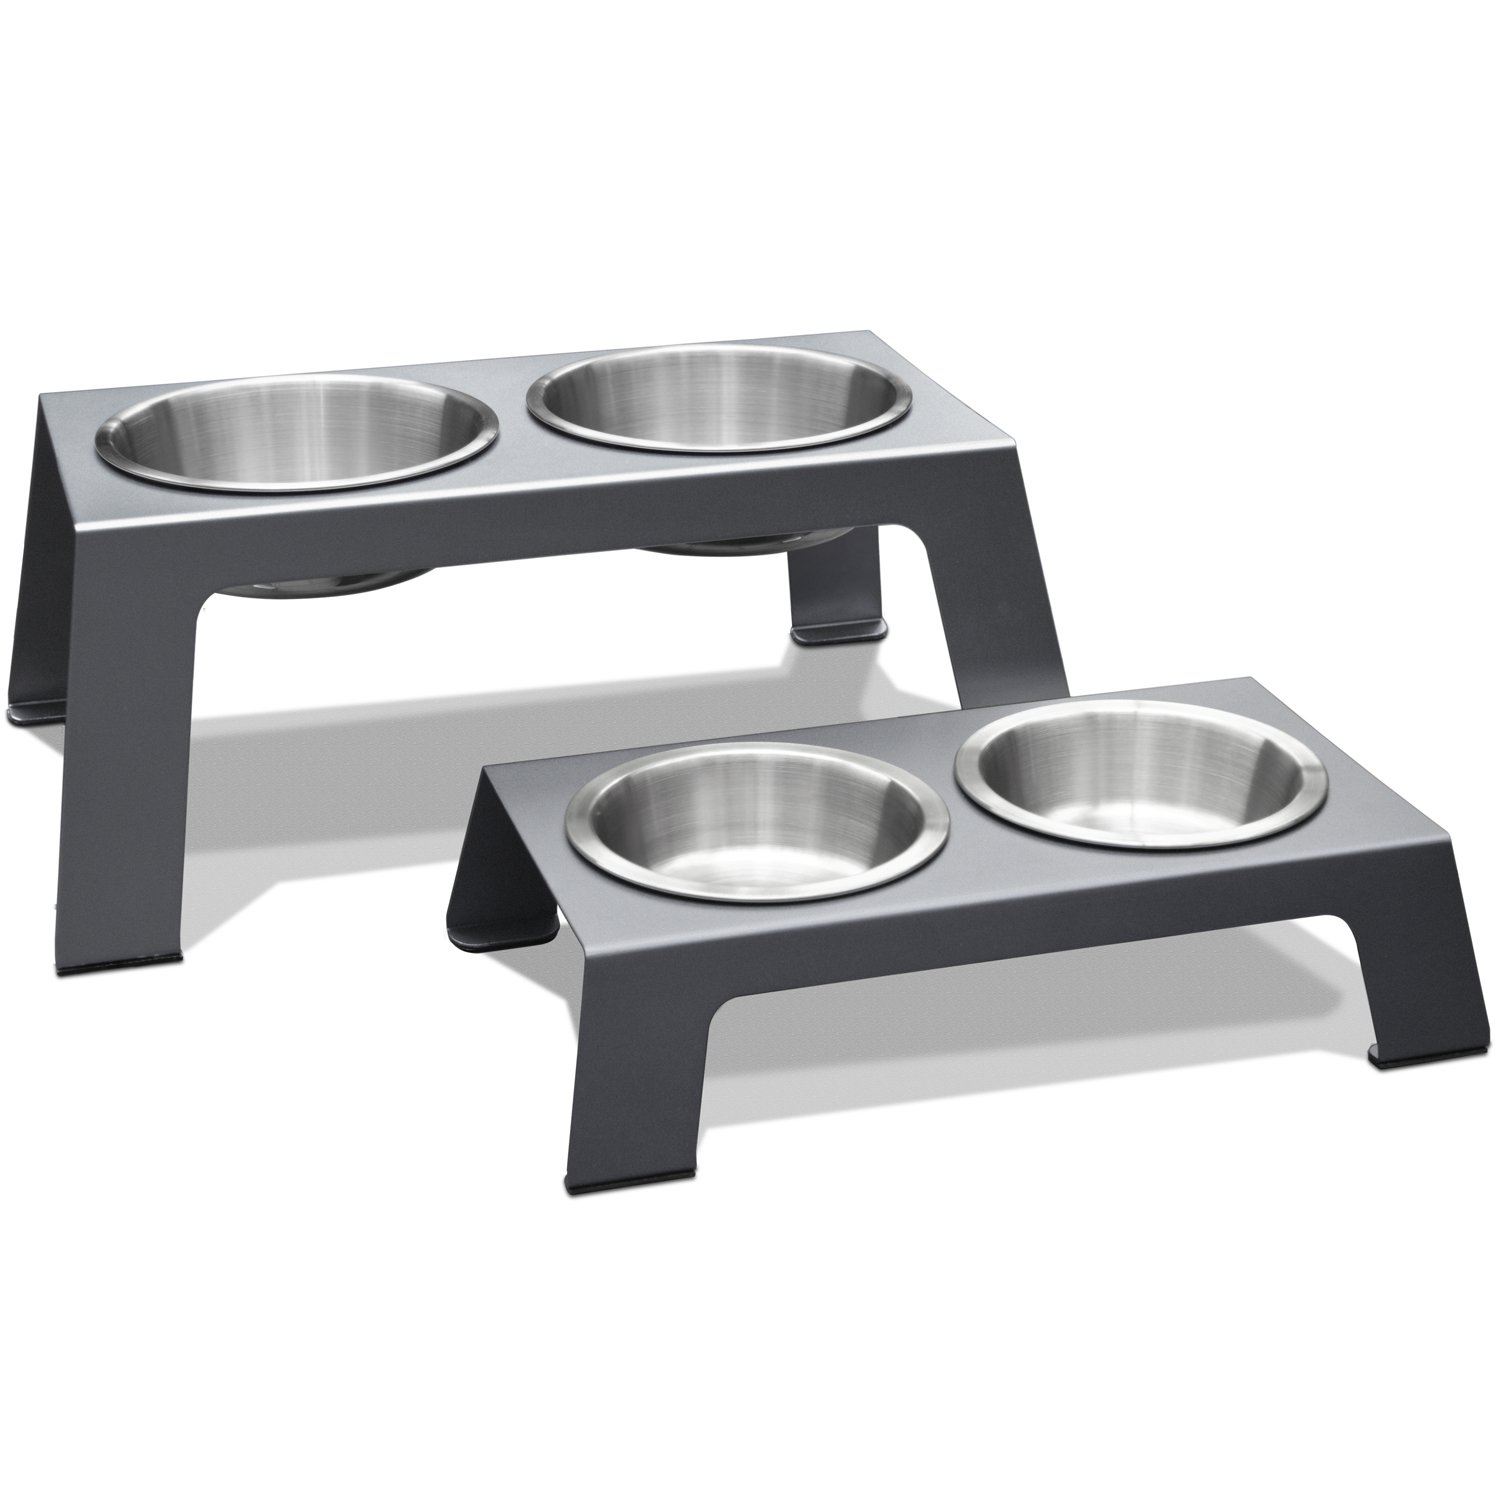 center with en petco feeder double cat diner feeders stands dog feeding shop bowls supplies bowl elevated petcostore harmony category